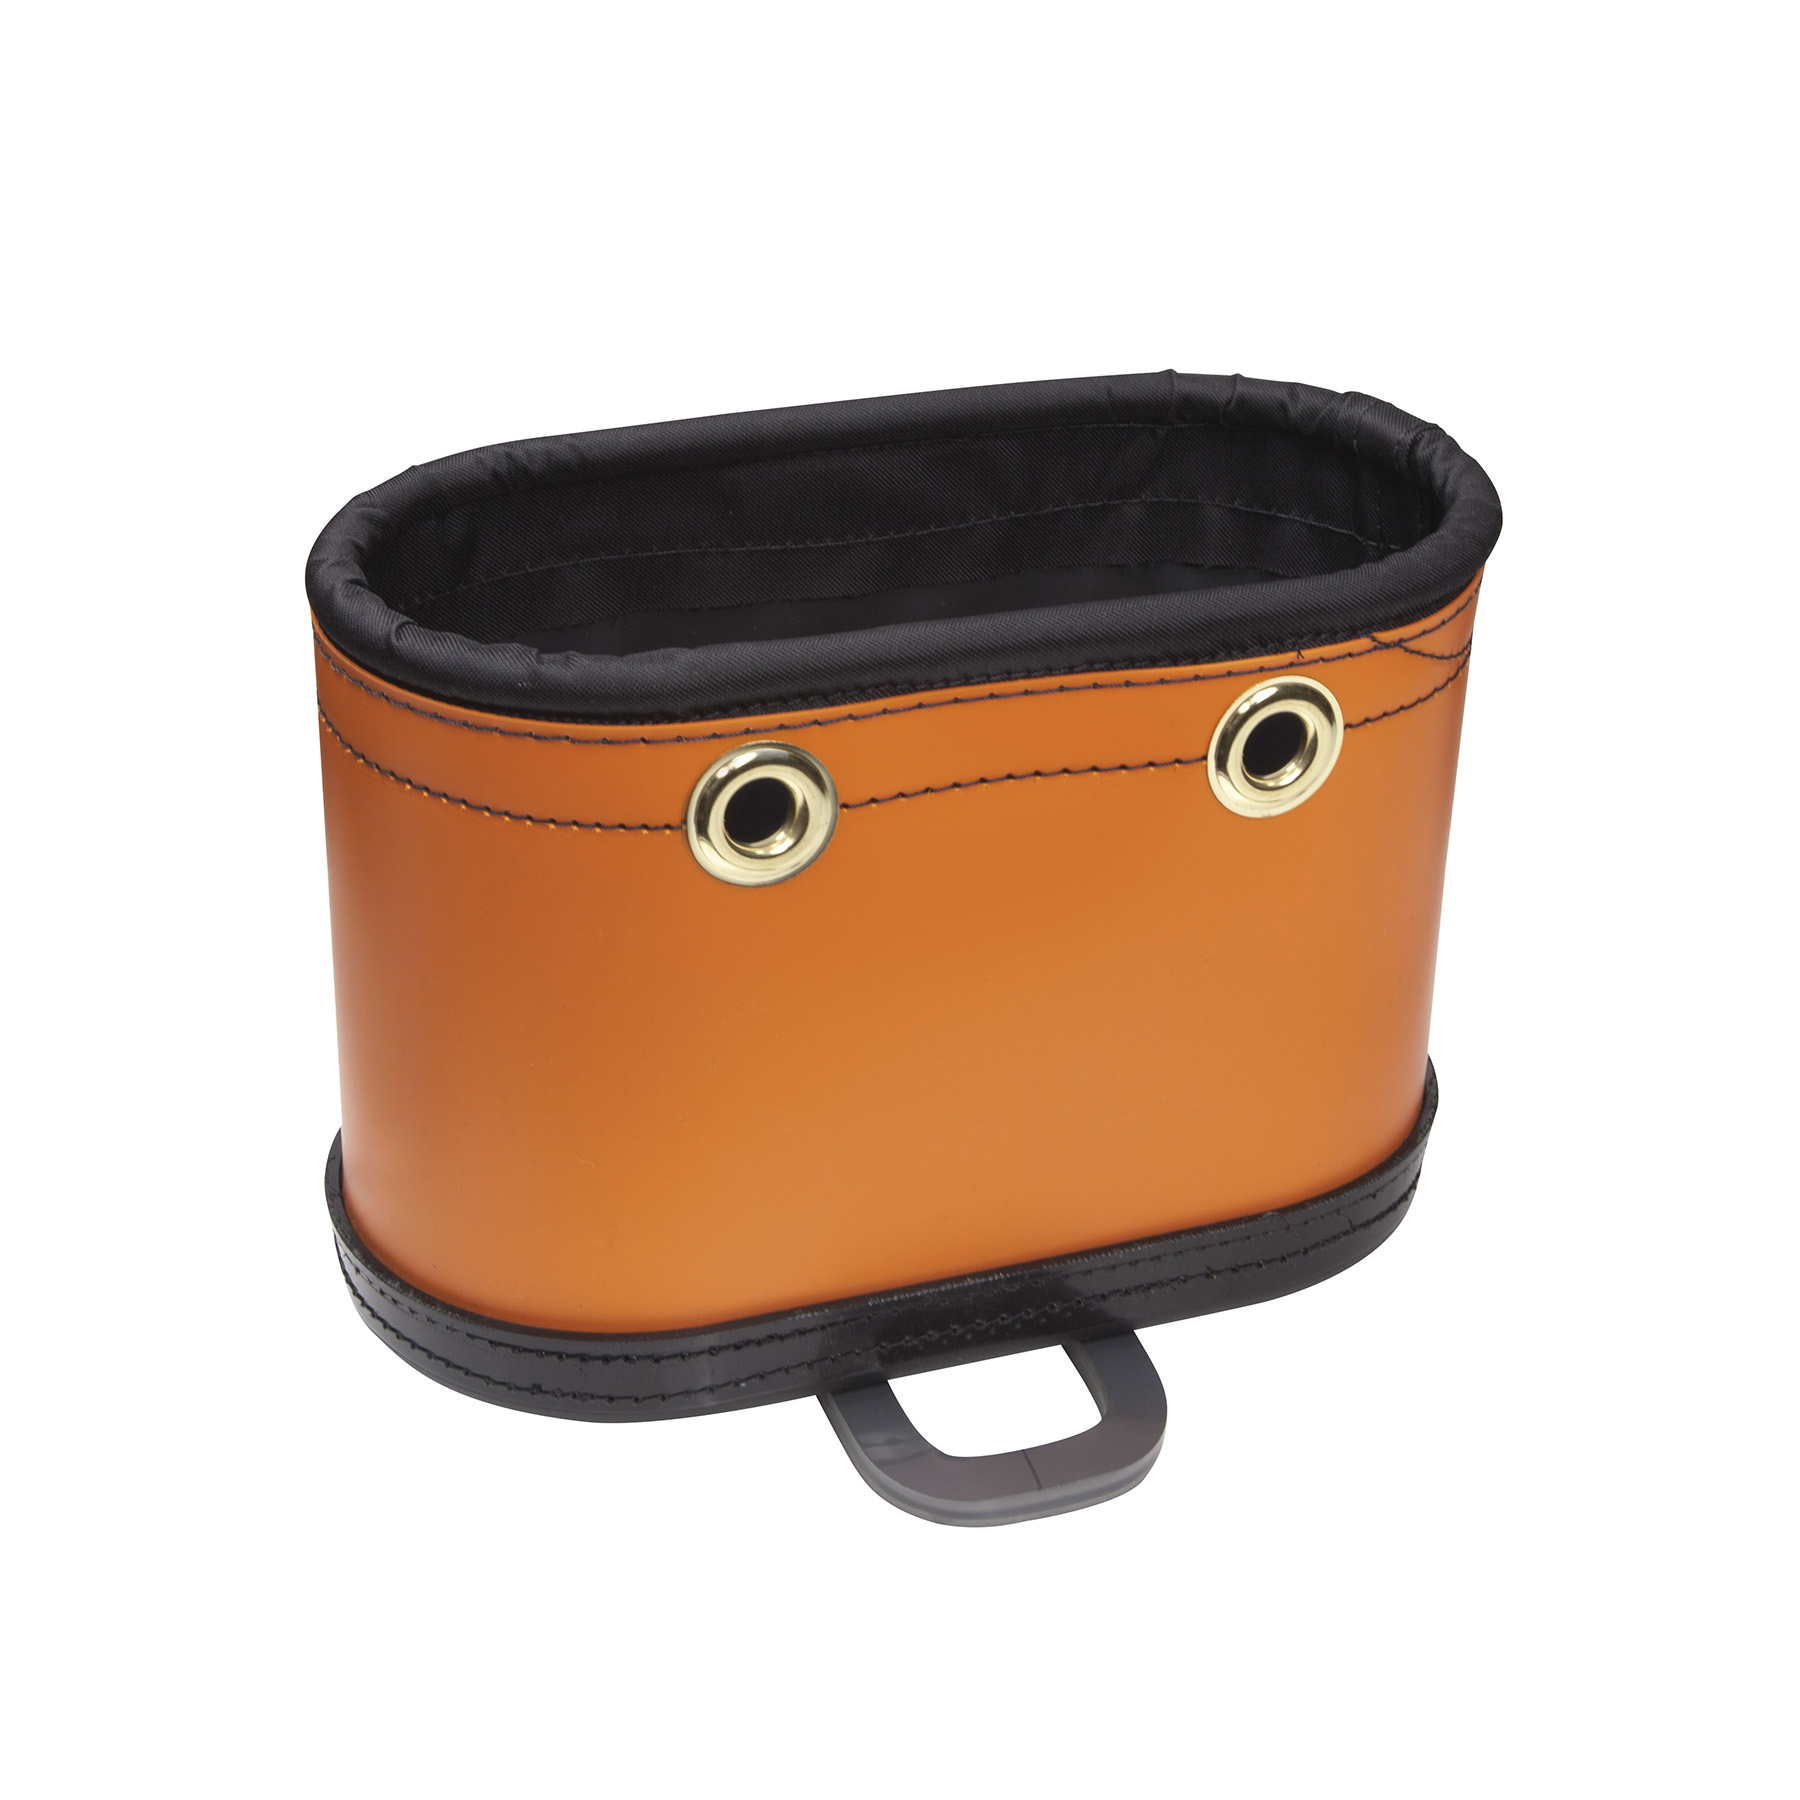 KLEIN HARD BODY OVAL BUCKET WITH KICKSTAND